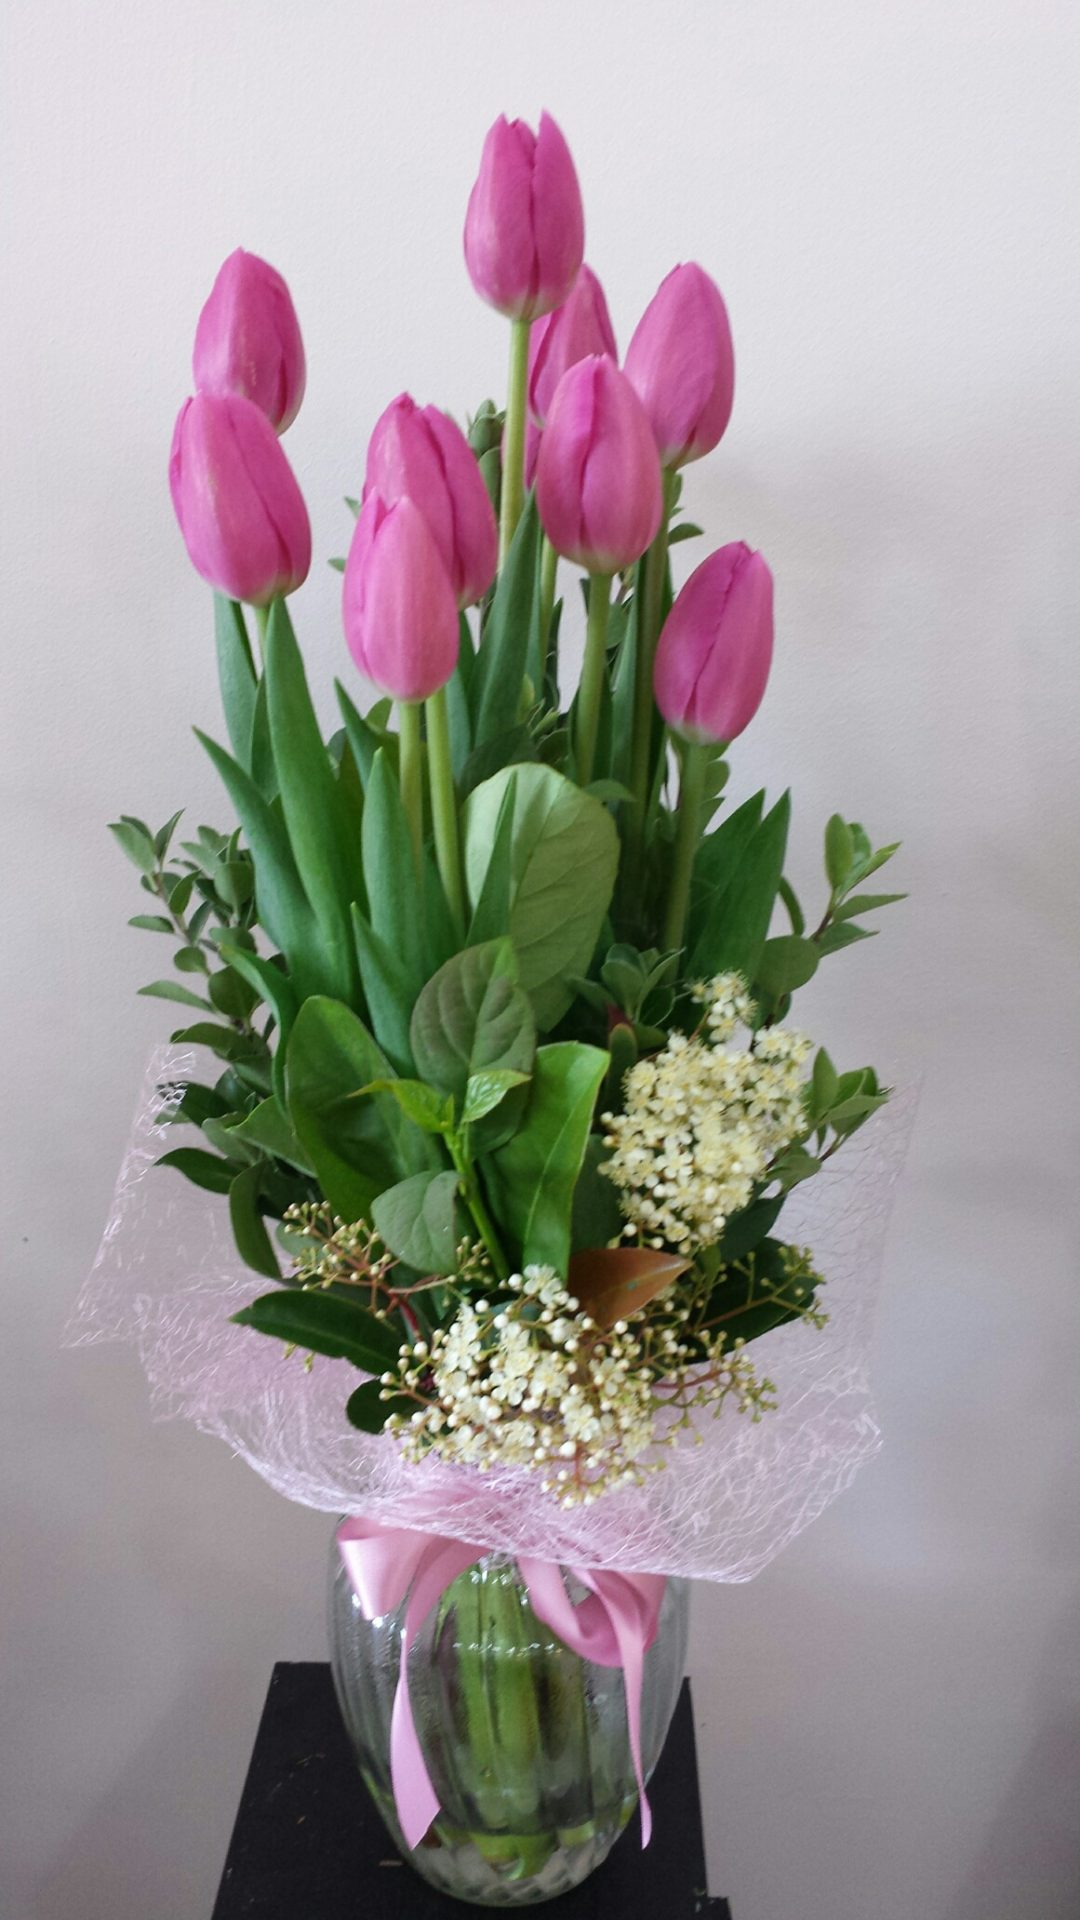 easy and vase ideas diy tulips pin tulip stunning in arrangement arranged flowers